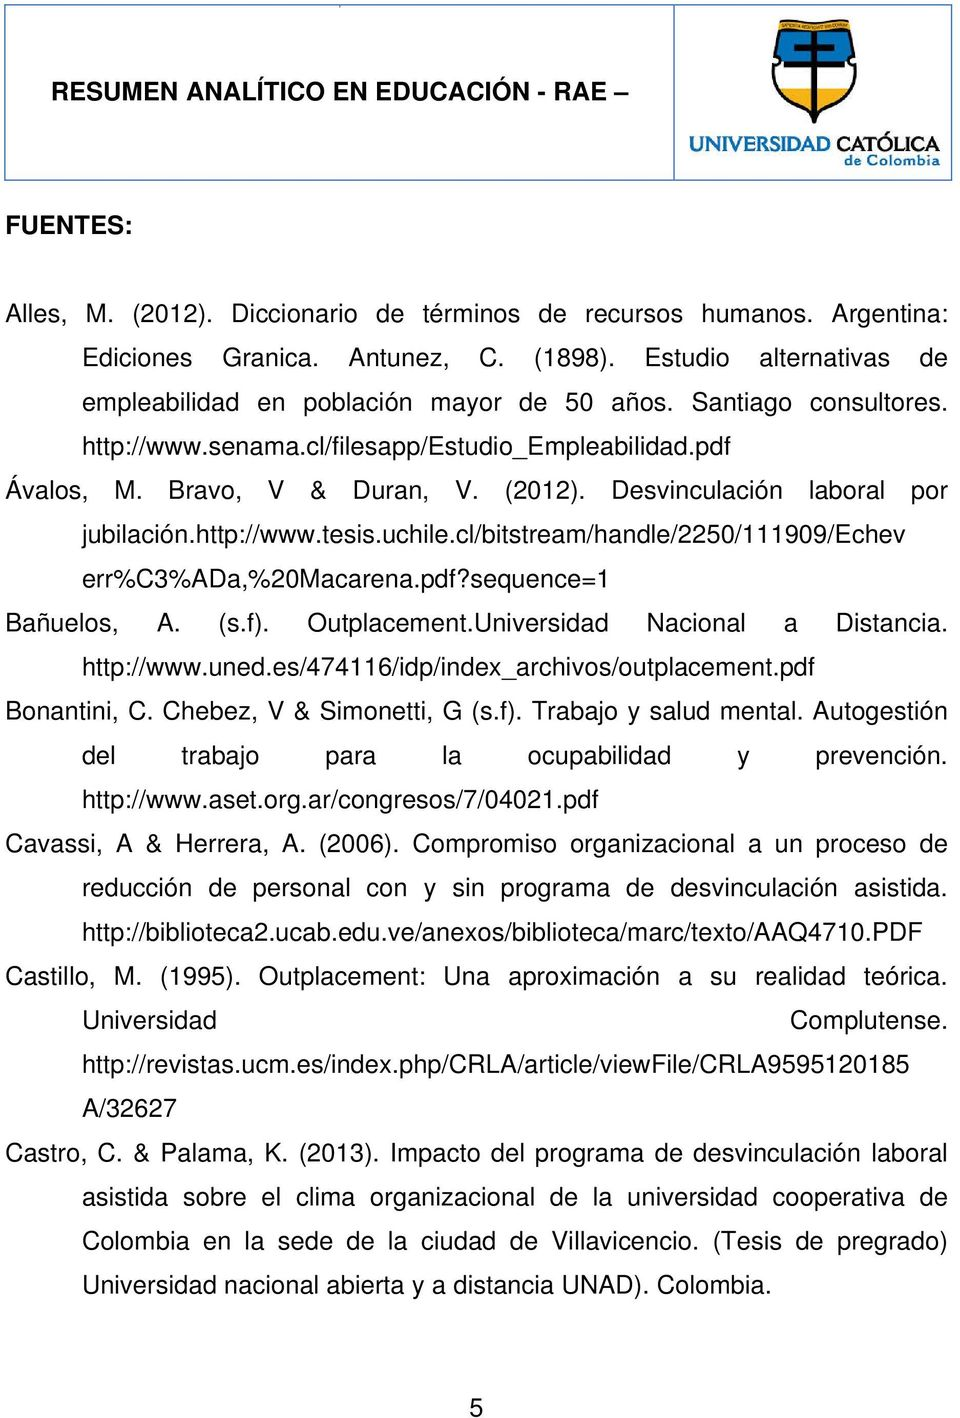 cl/bitstream/handle/2250/111909/echev err%c3%ada,%20macarena.pdf?sequence=1 Bañuelos, A. (s.f). Outplacement.Universidad Nacional a Distancia. http://www.uned.